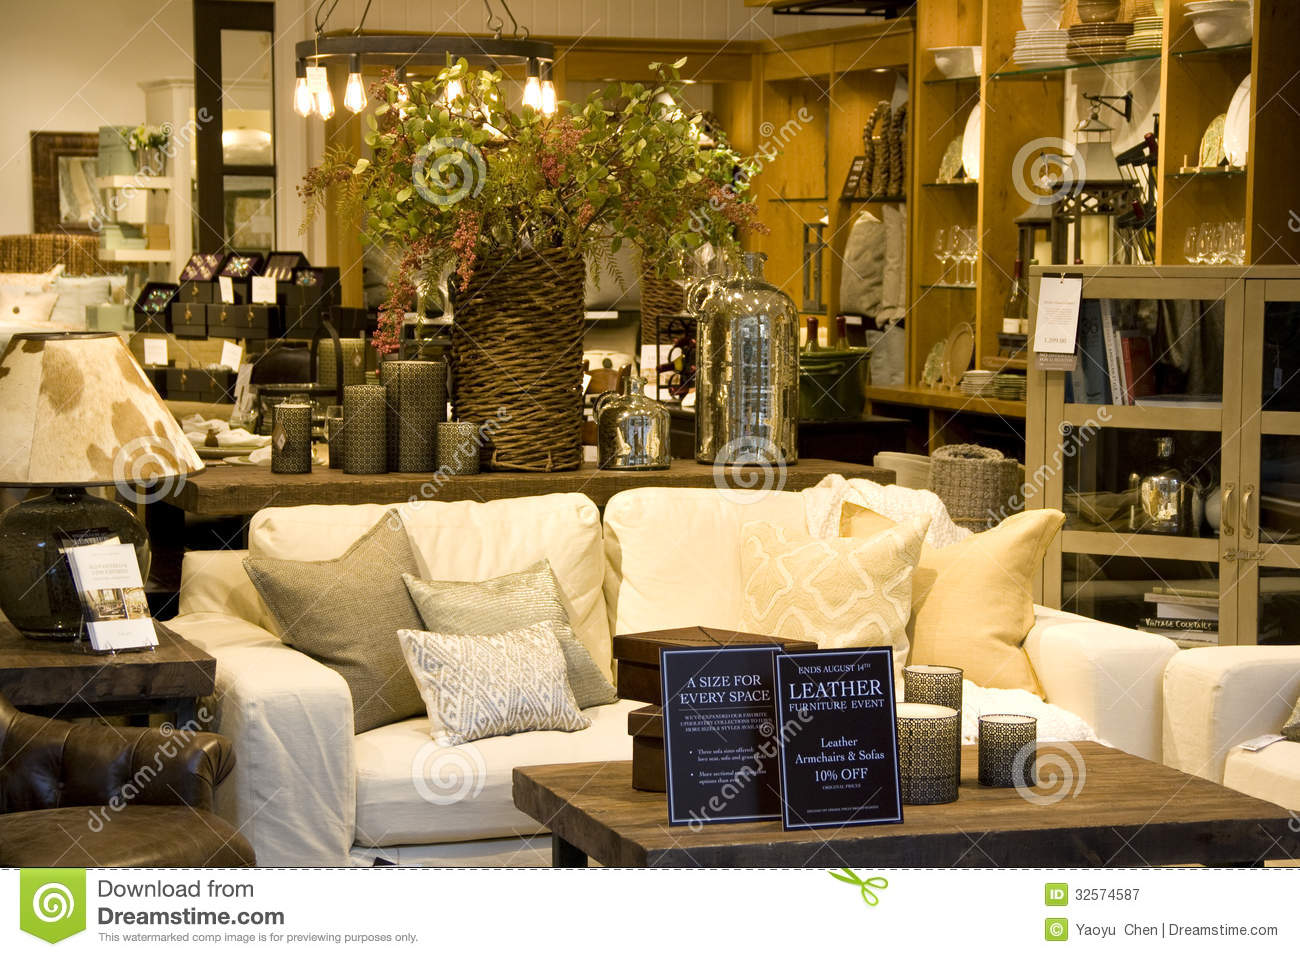 Furniture home decor store Royalty Free Stock Photography. Home Furniture And Decor Store Royalty Free Stock Photo   Image